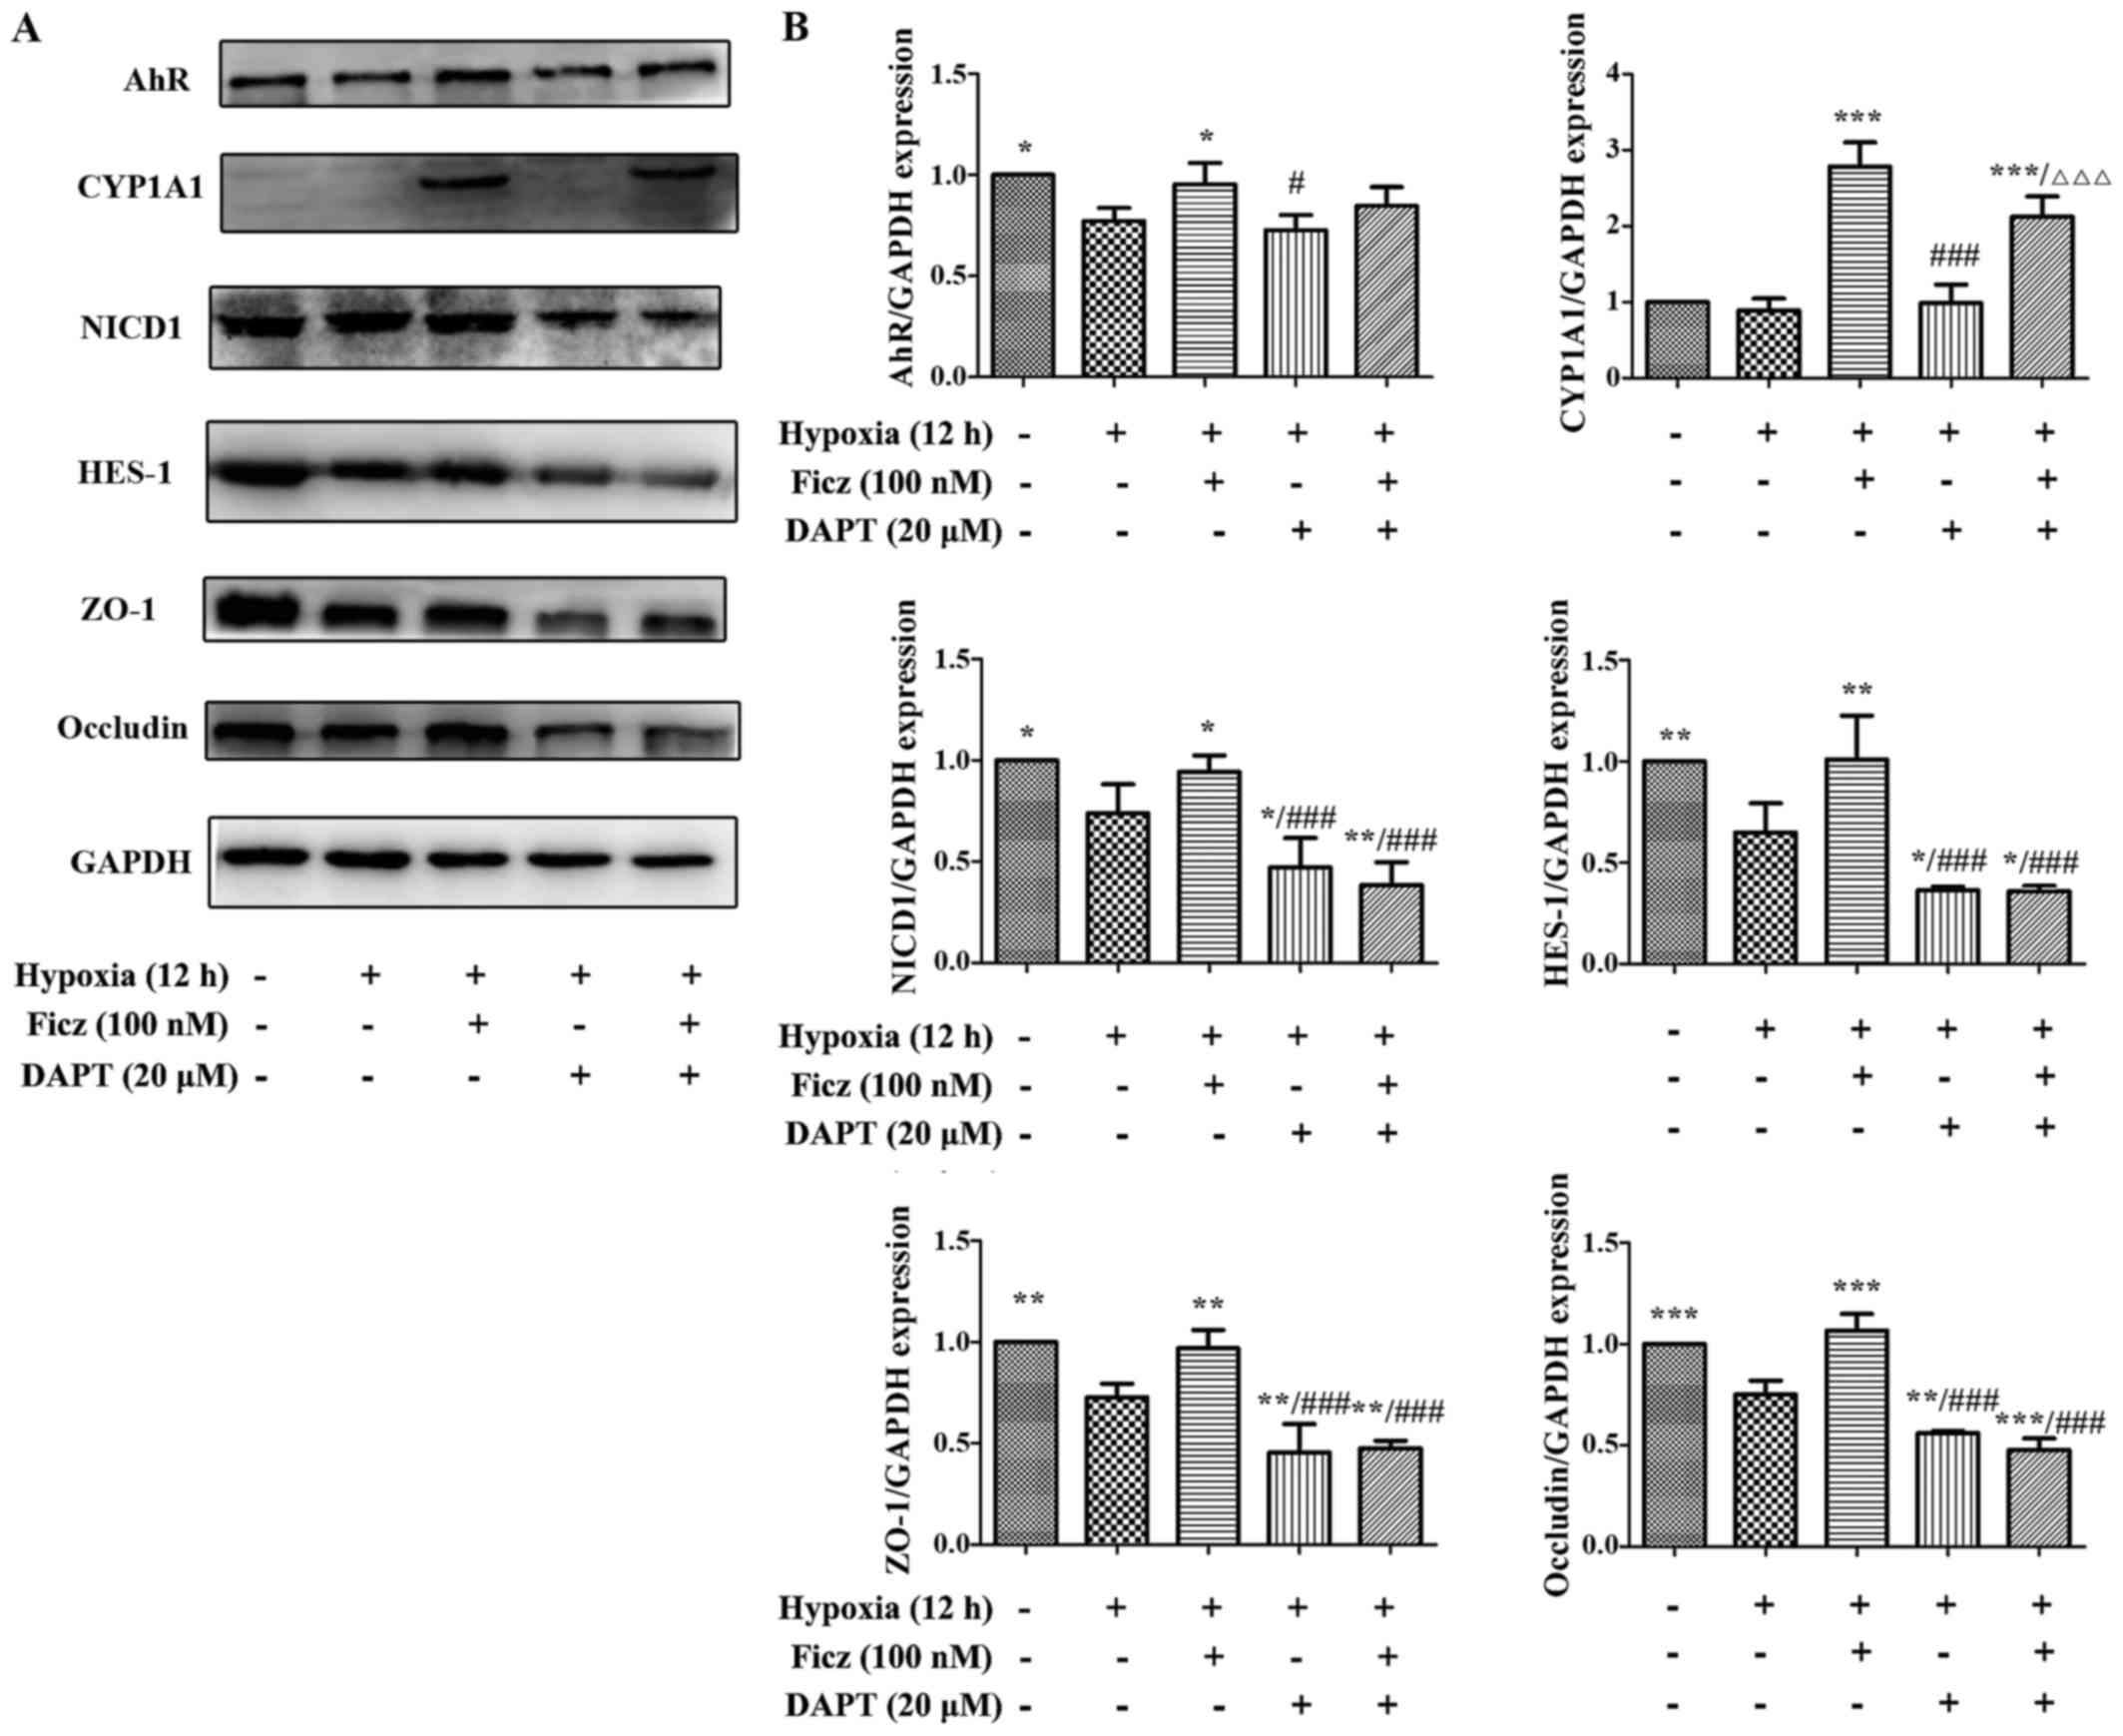 Aryl Hydrocarbon Receptor Activation Maintained The Intestinal Different Types Of Shortcircuits Sc As Outlined In Figure 41 Data Are Presented Mean Standard Deviation P005 P001 P0001 Vs Hx Group Ficz